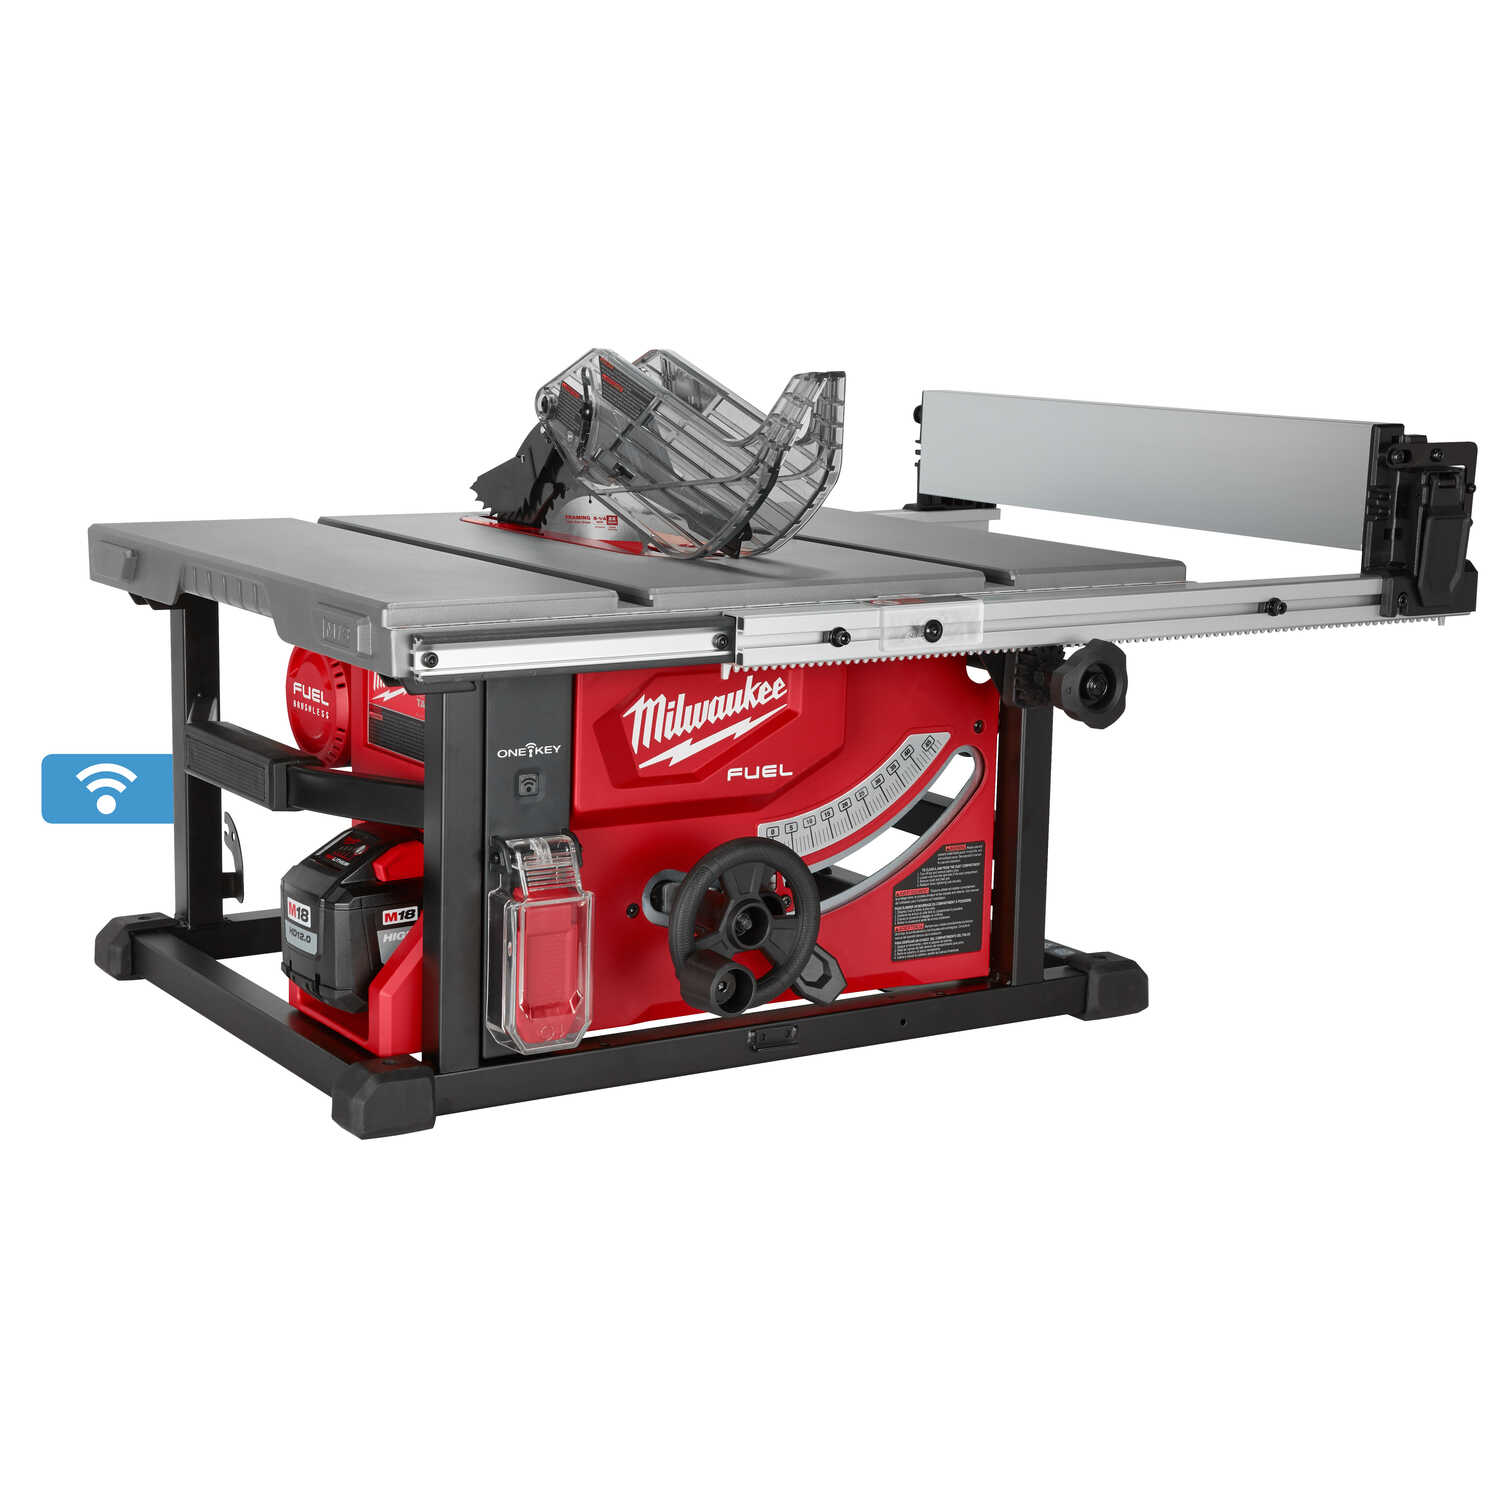 Milwaukee  M18 FUEL  8-1/4 in. Cordless  with One-Key  Table Saw  15 amps 18 volt 5800 rpm